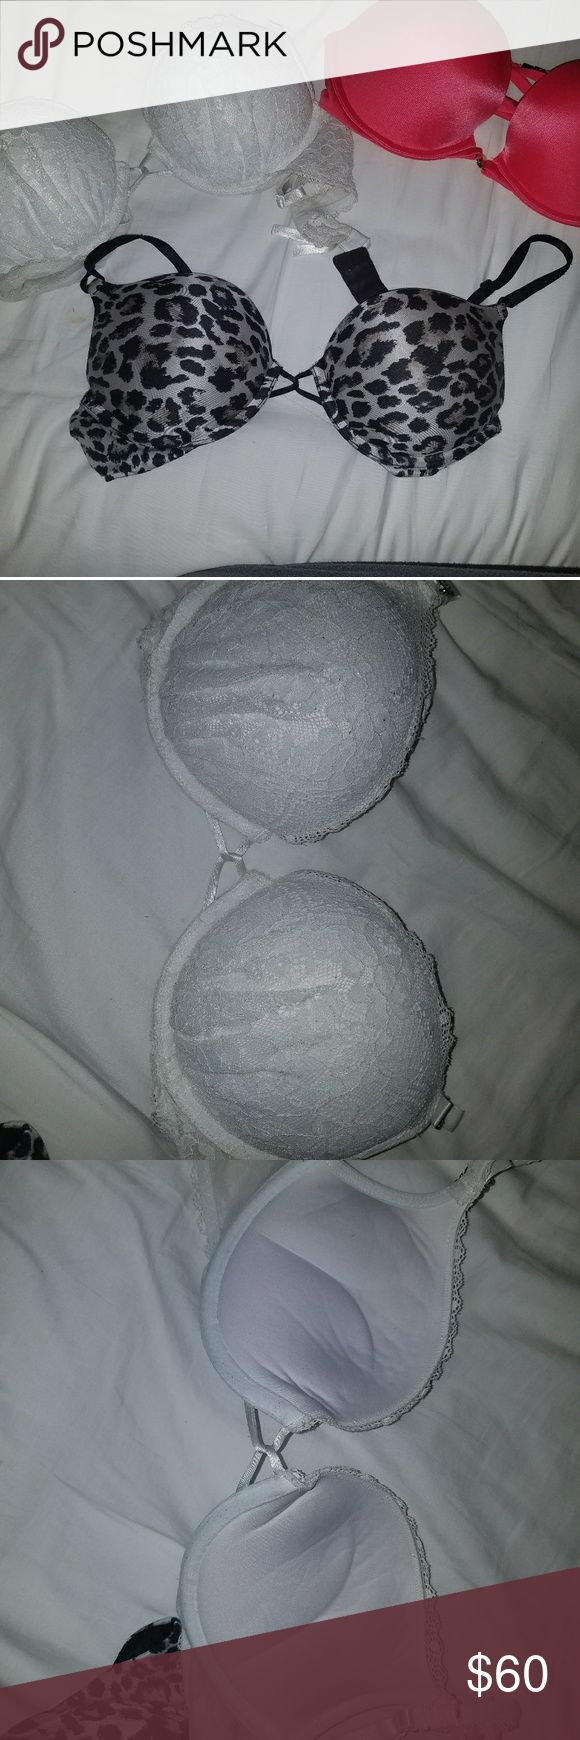 Victoria's Secret Bra Bundle!! Bomb Shell leopard print bra size 34B Great condition and brings your breast cup size up about 2 cups ! Gives you amazing cleavage!  Bomb Shell White Laced bra Size 34B Great condition and brings your breast cup size up about 2 cups ! Gives you amazing cleavage!  Very Sexy Push up Razer back front open and close bra. Such a beautiful Bra to wear with an open back shirt or tank top has such a nice back with gold accessory charms Size 34C this bra is very…